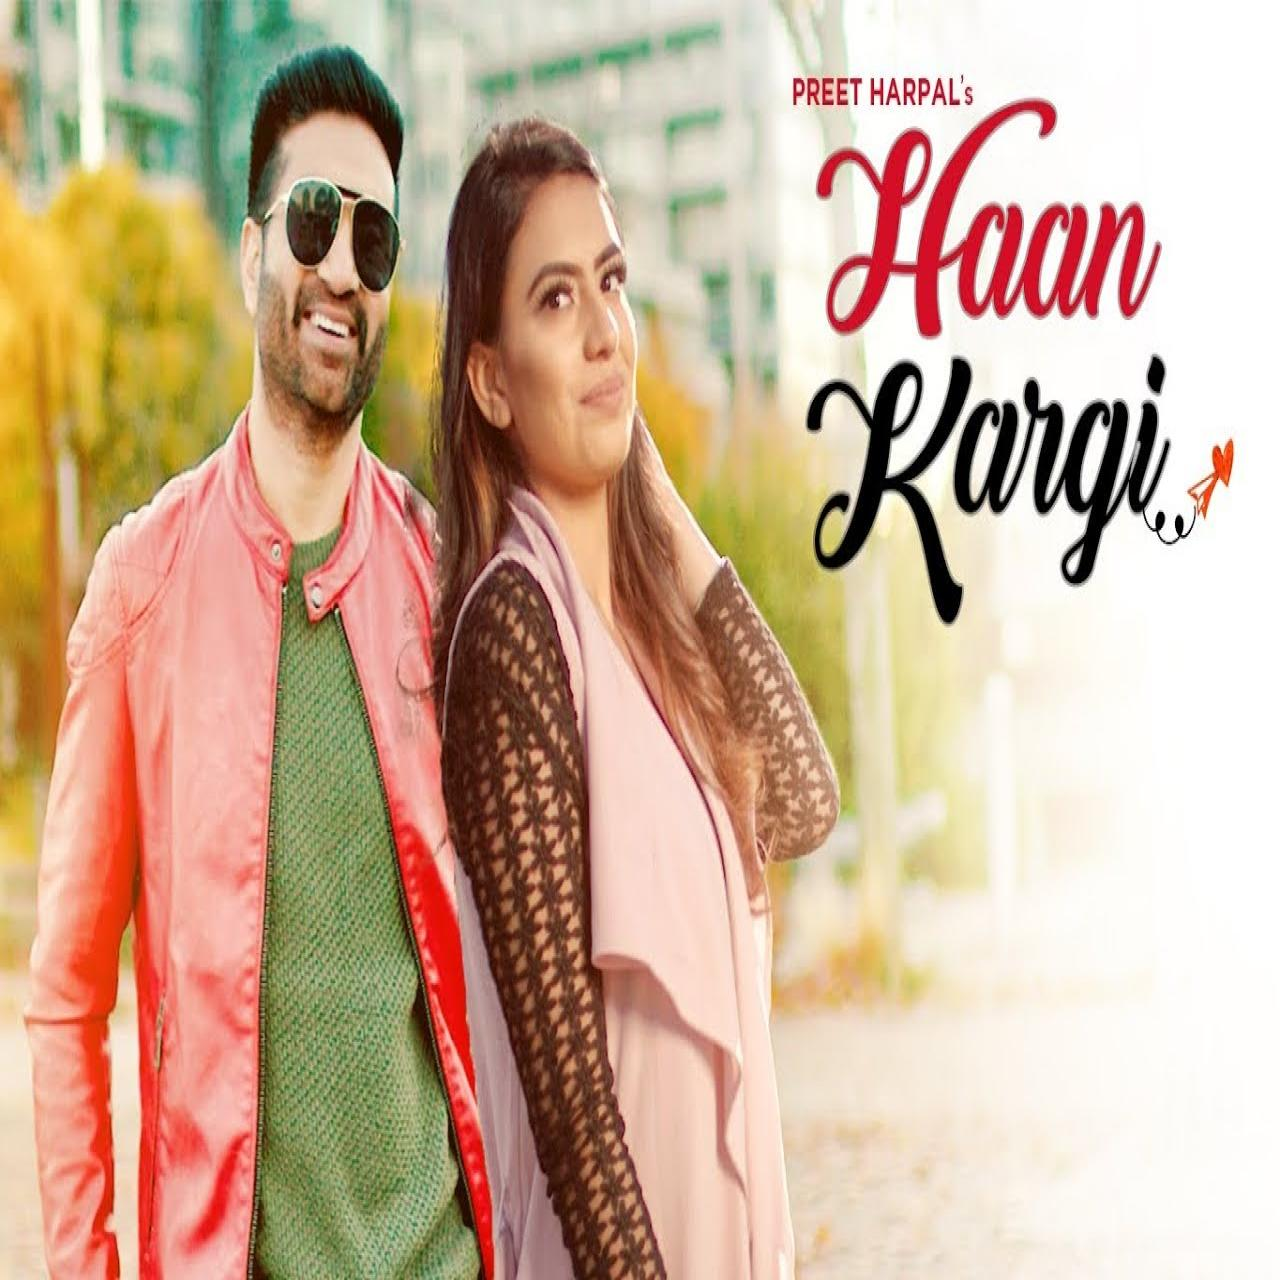 Haan Kargi Preet Harpal  new song